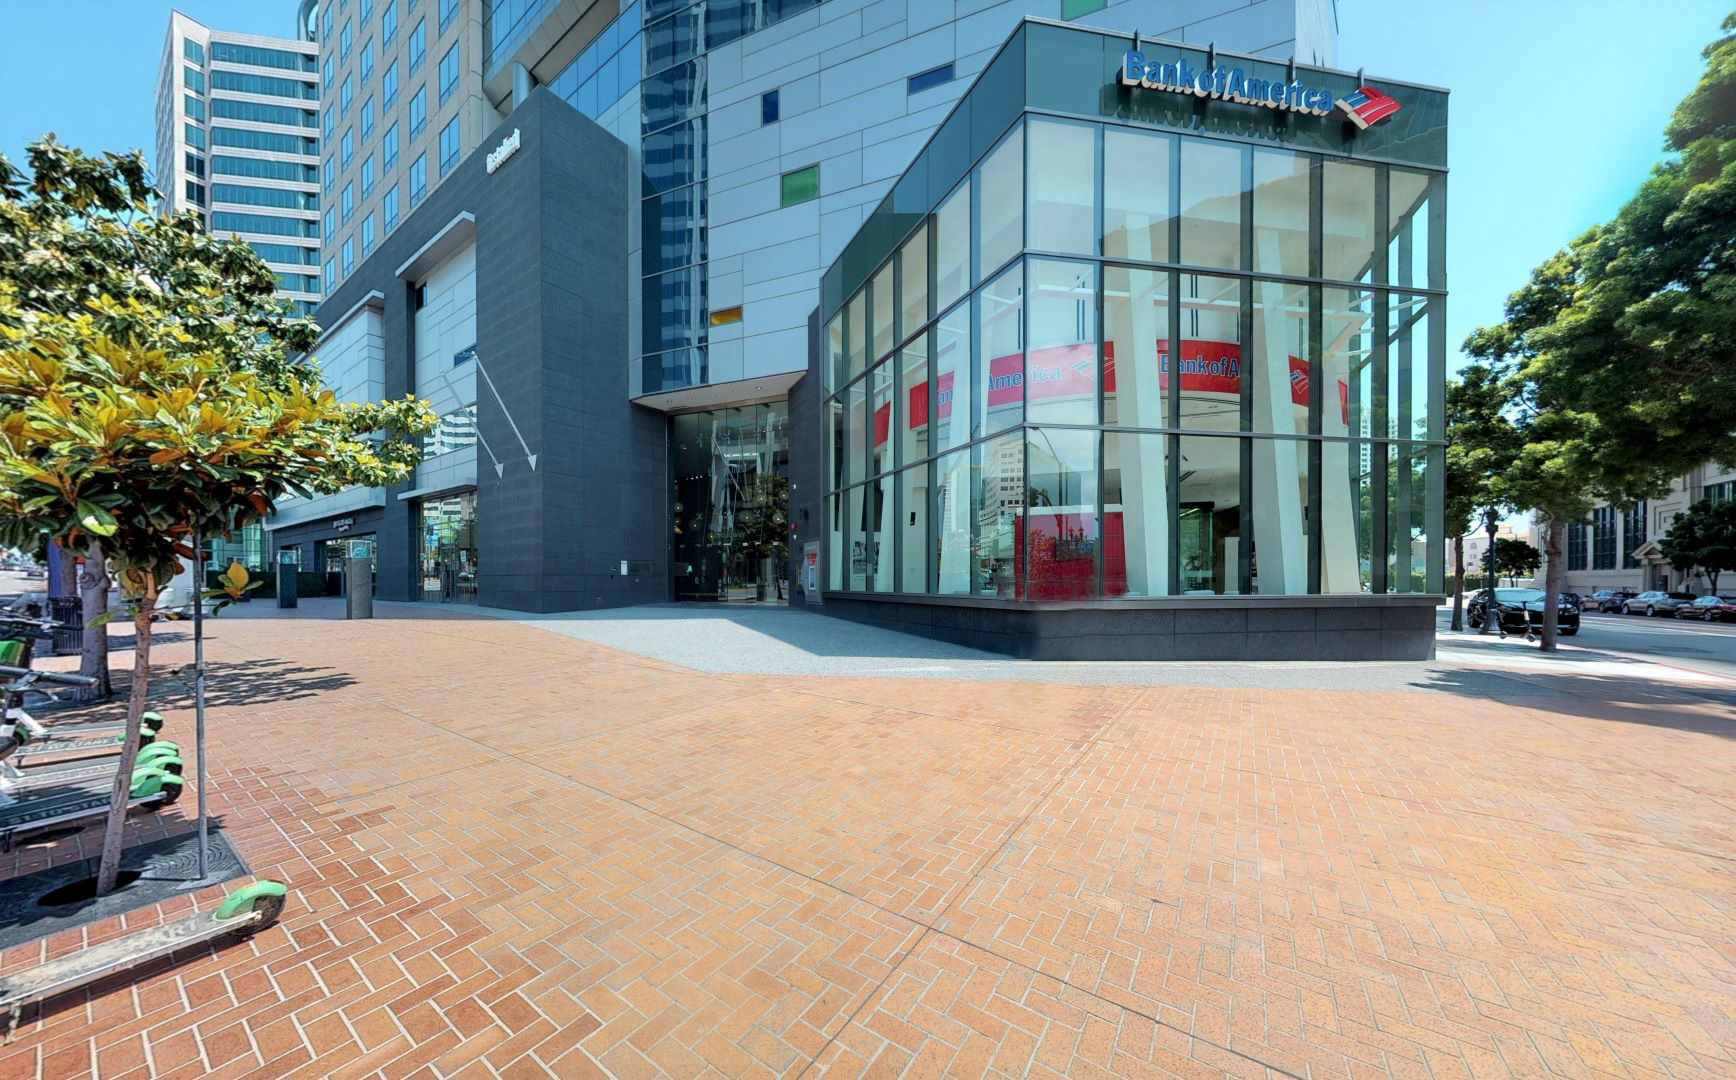 Bank of America financial center with walk-up ATM   655 W Broadway STE 101, San Diego, CA 92101